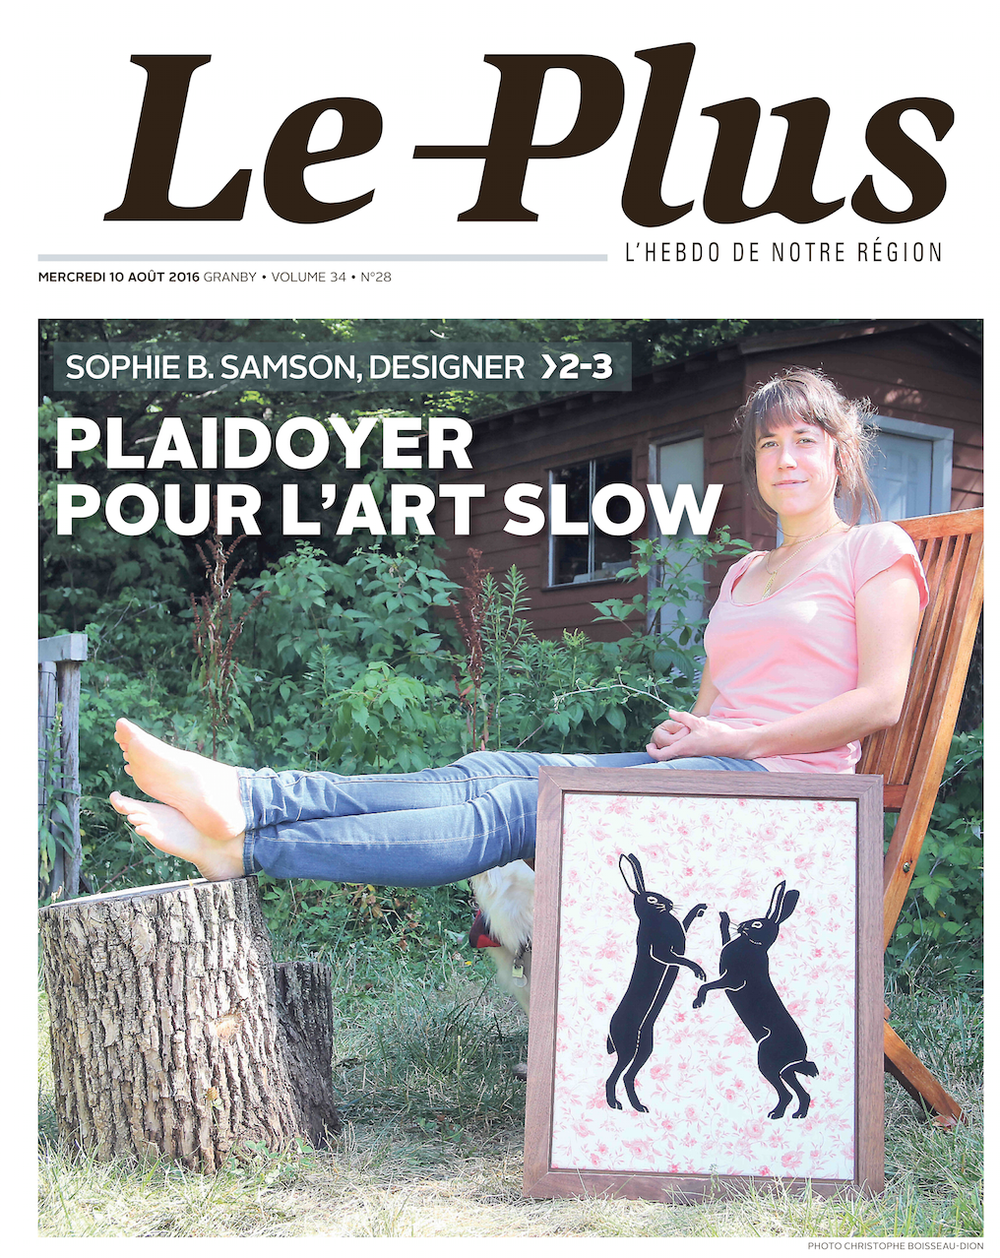 Couverture du journal de Granby Le Plus.